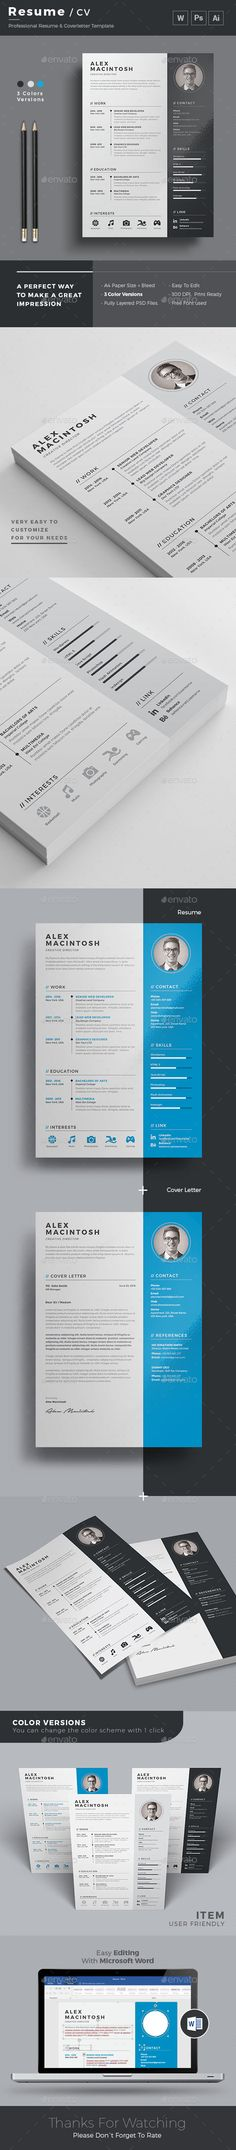 28cd8087f71acac952d64cf7fc938e81--microsoft-word-templates-free-cv -template-freejpg - net resume